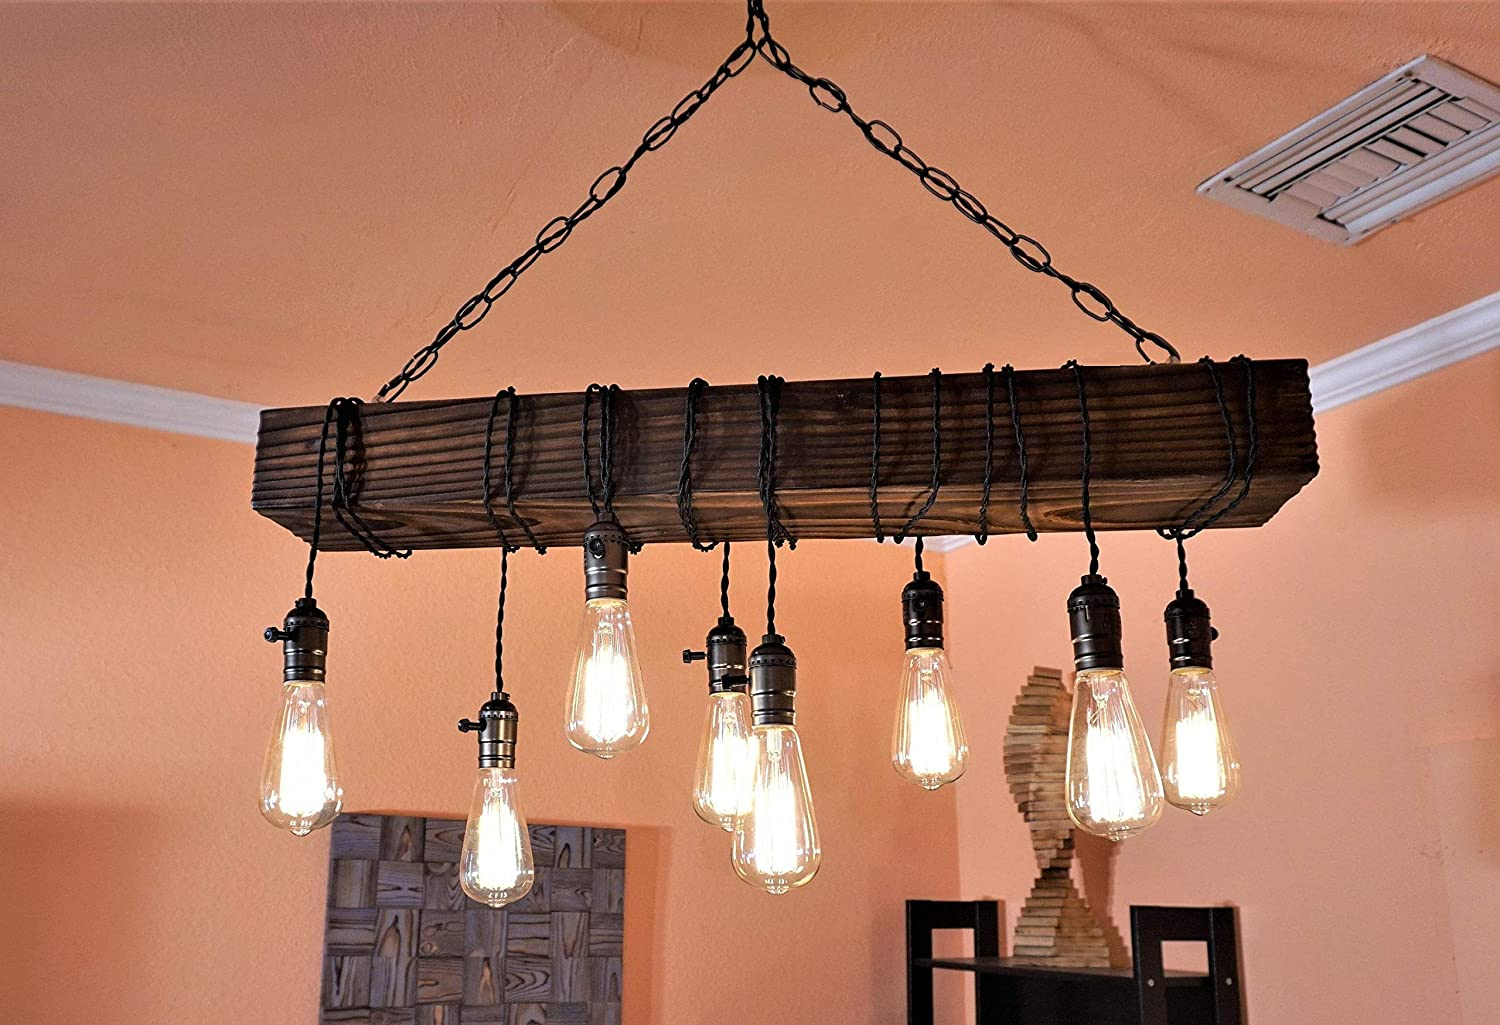 Farmhouse chandelier wood chandelier rustic chandeliers chandelier wood beam chandelier farmhouse lighting wood chandelier rustic lighting rustic